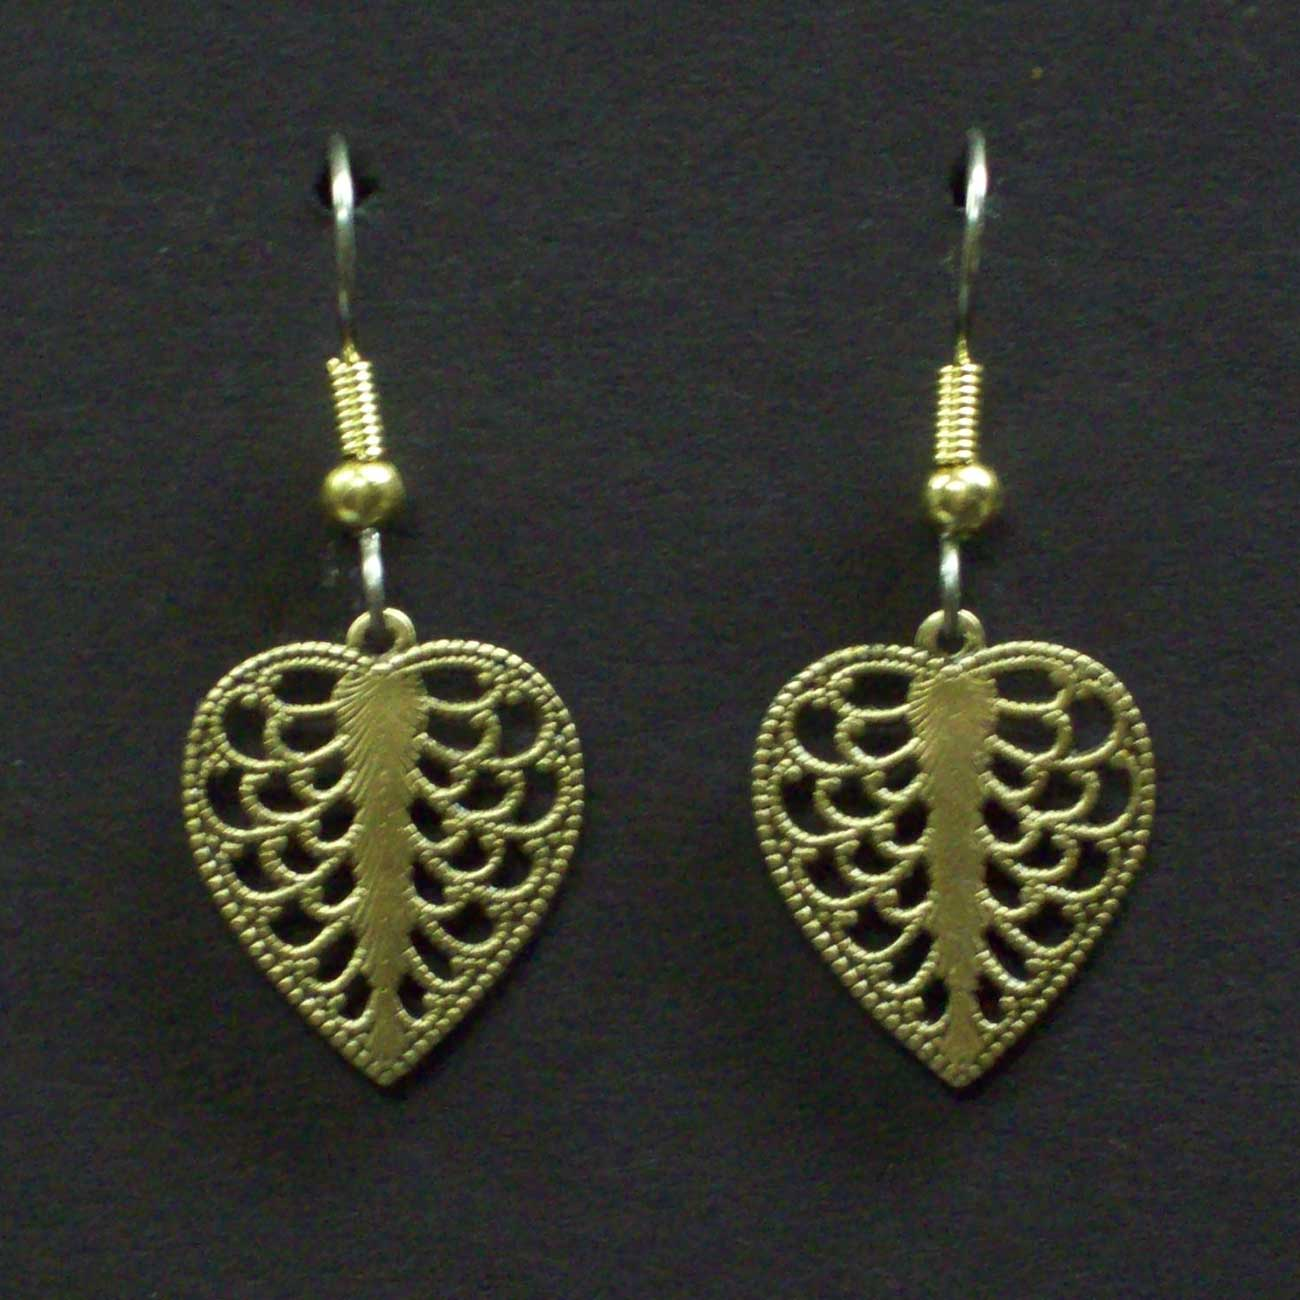 Small Filigree Heart Earrings